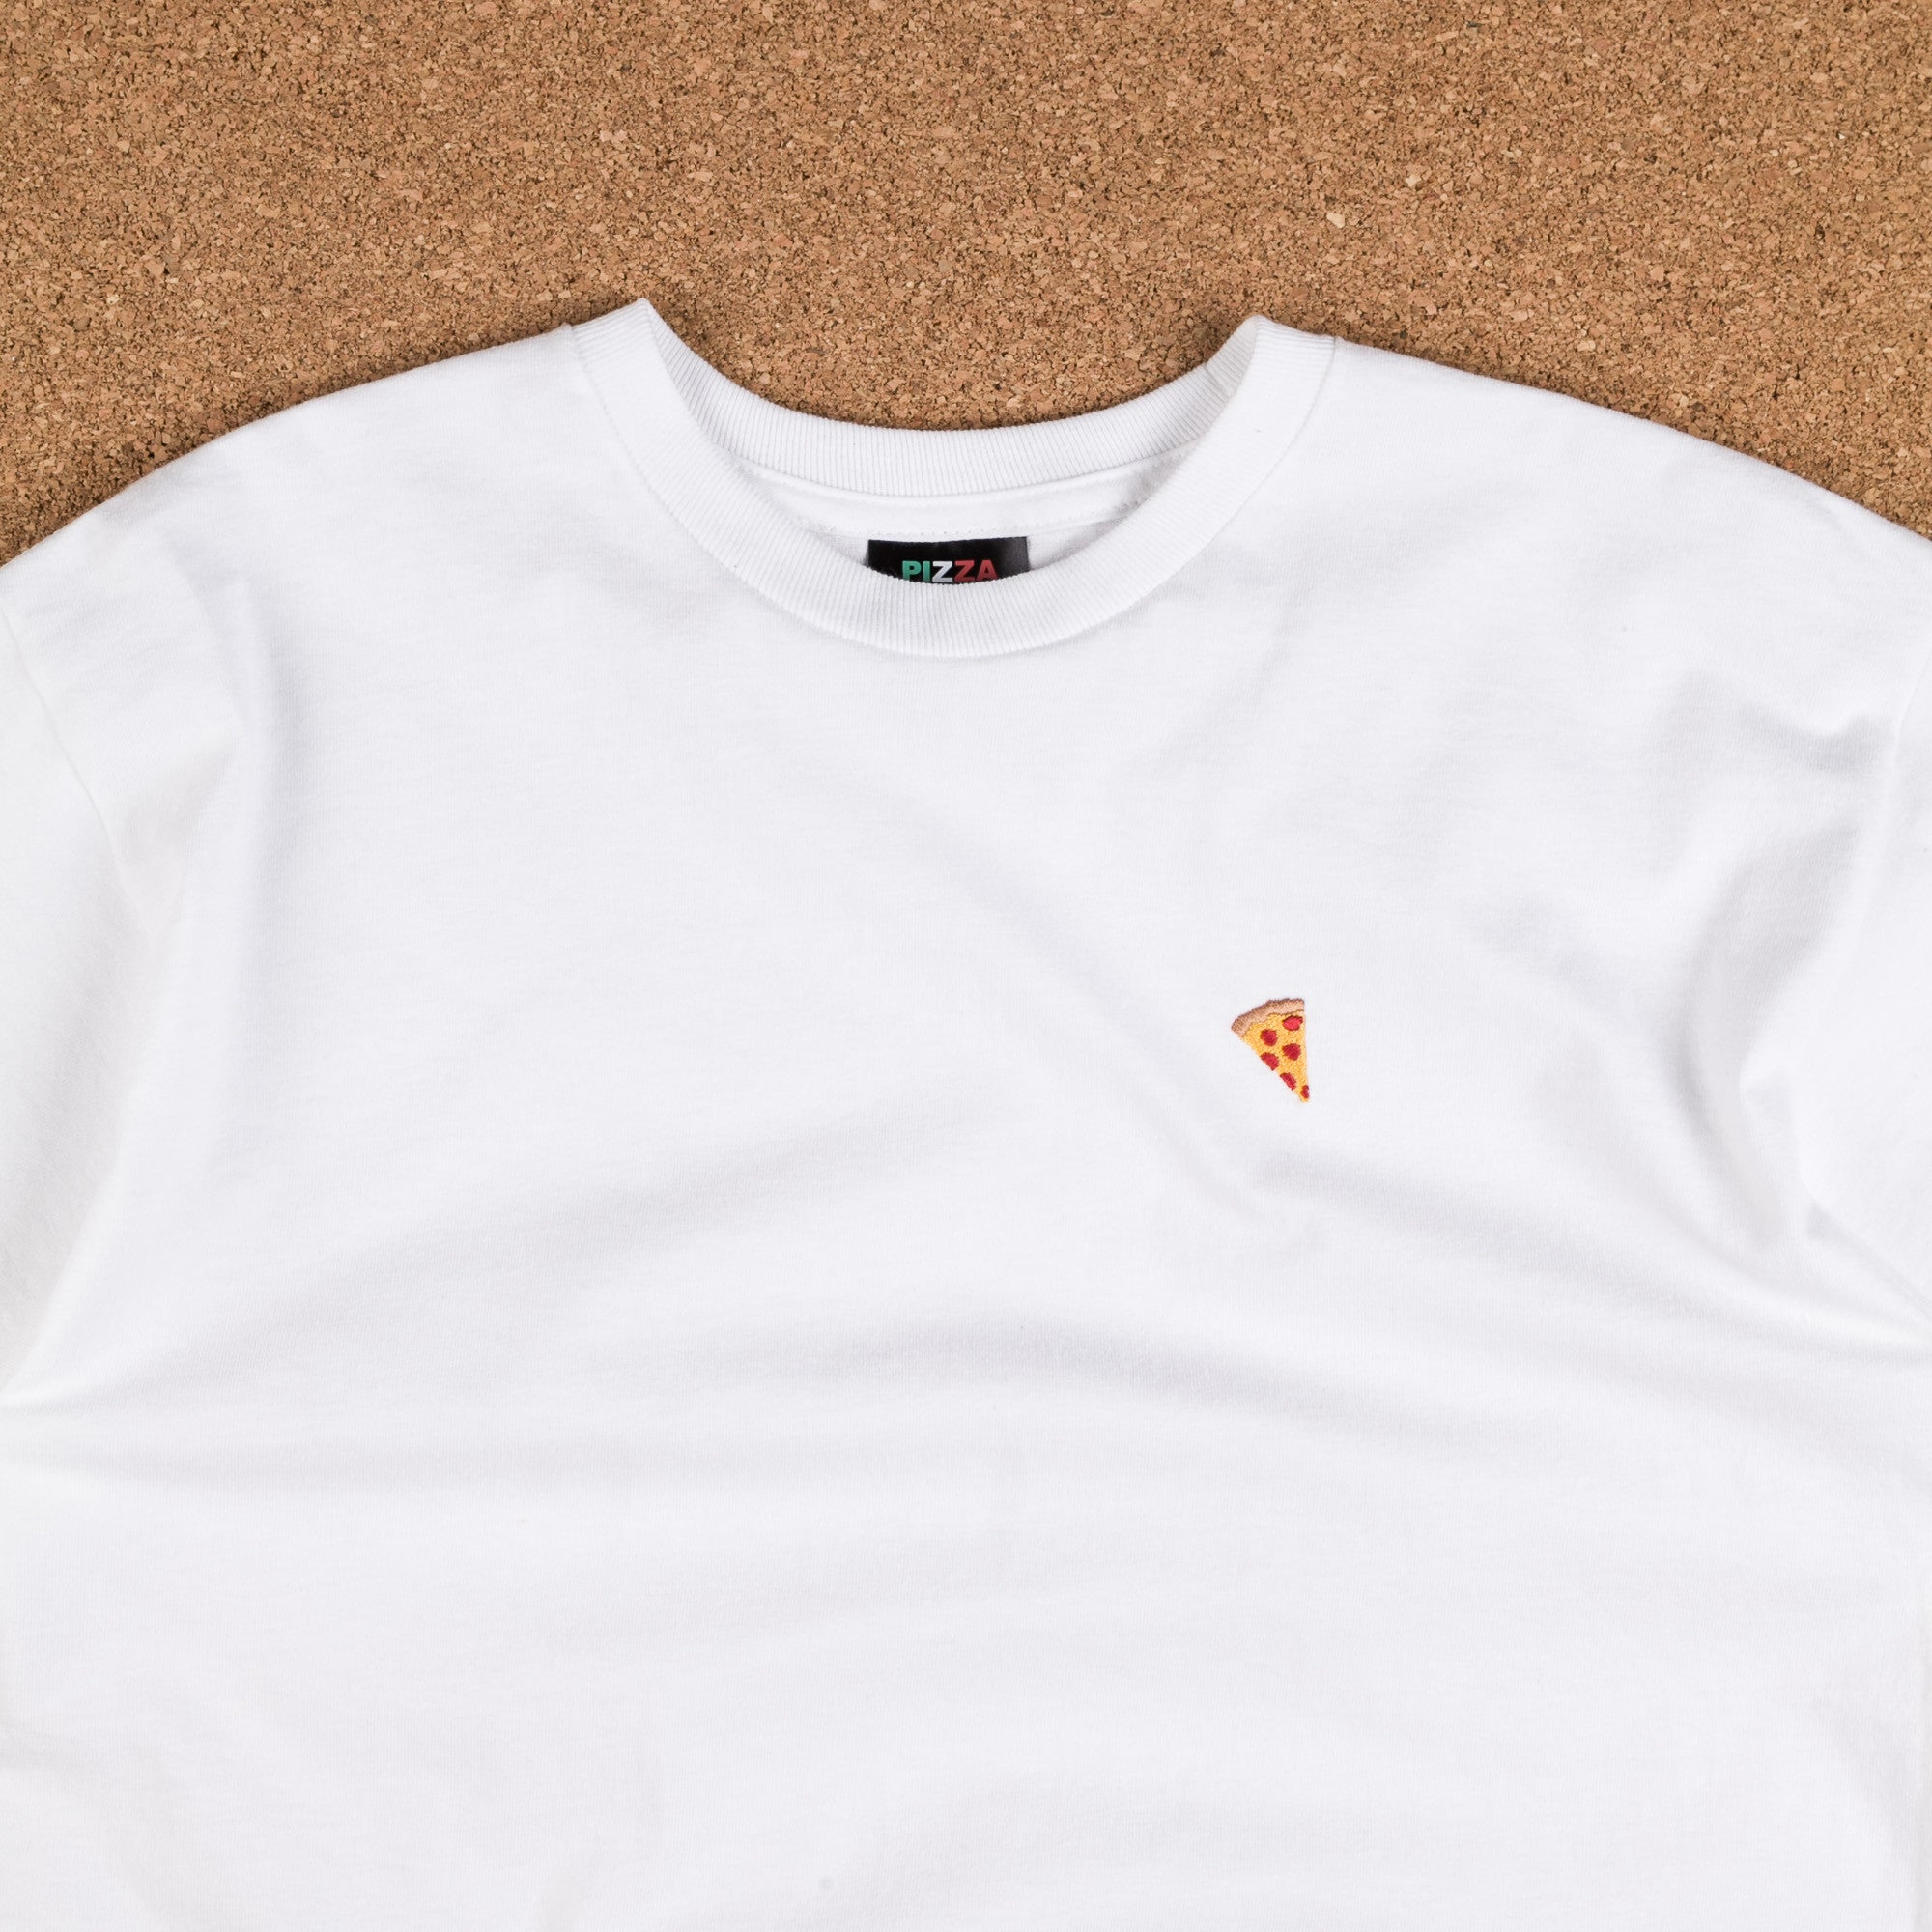 Pizza Skateboards Emoji T-Shirt - White